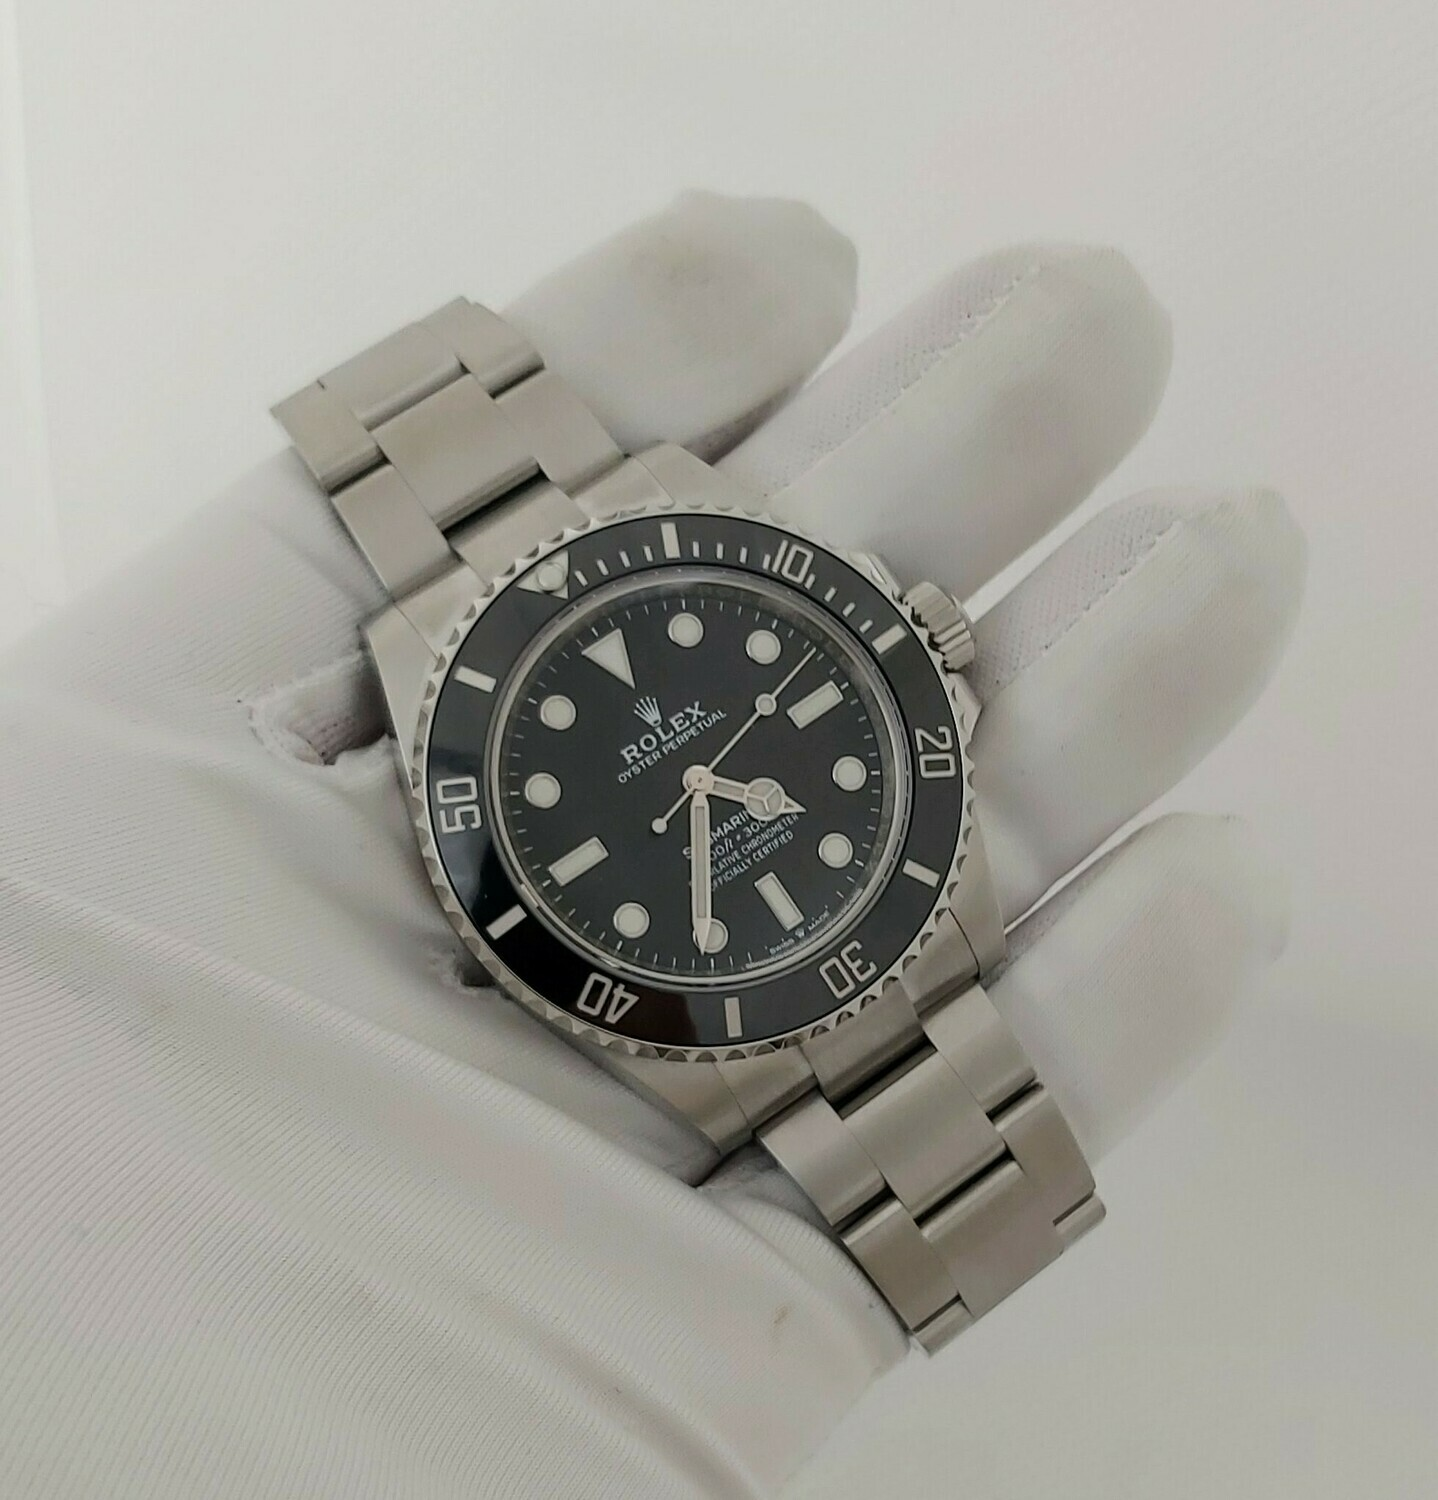 Rolex Submariner 124060 - 2021 Full Set - Unworn